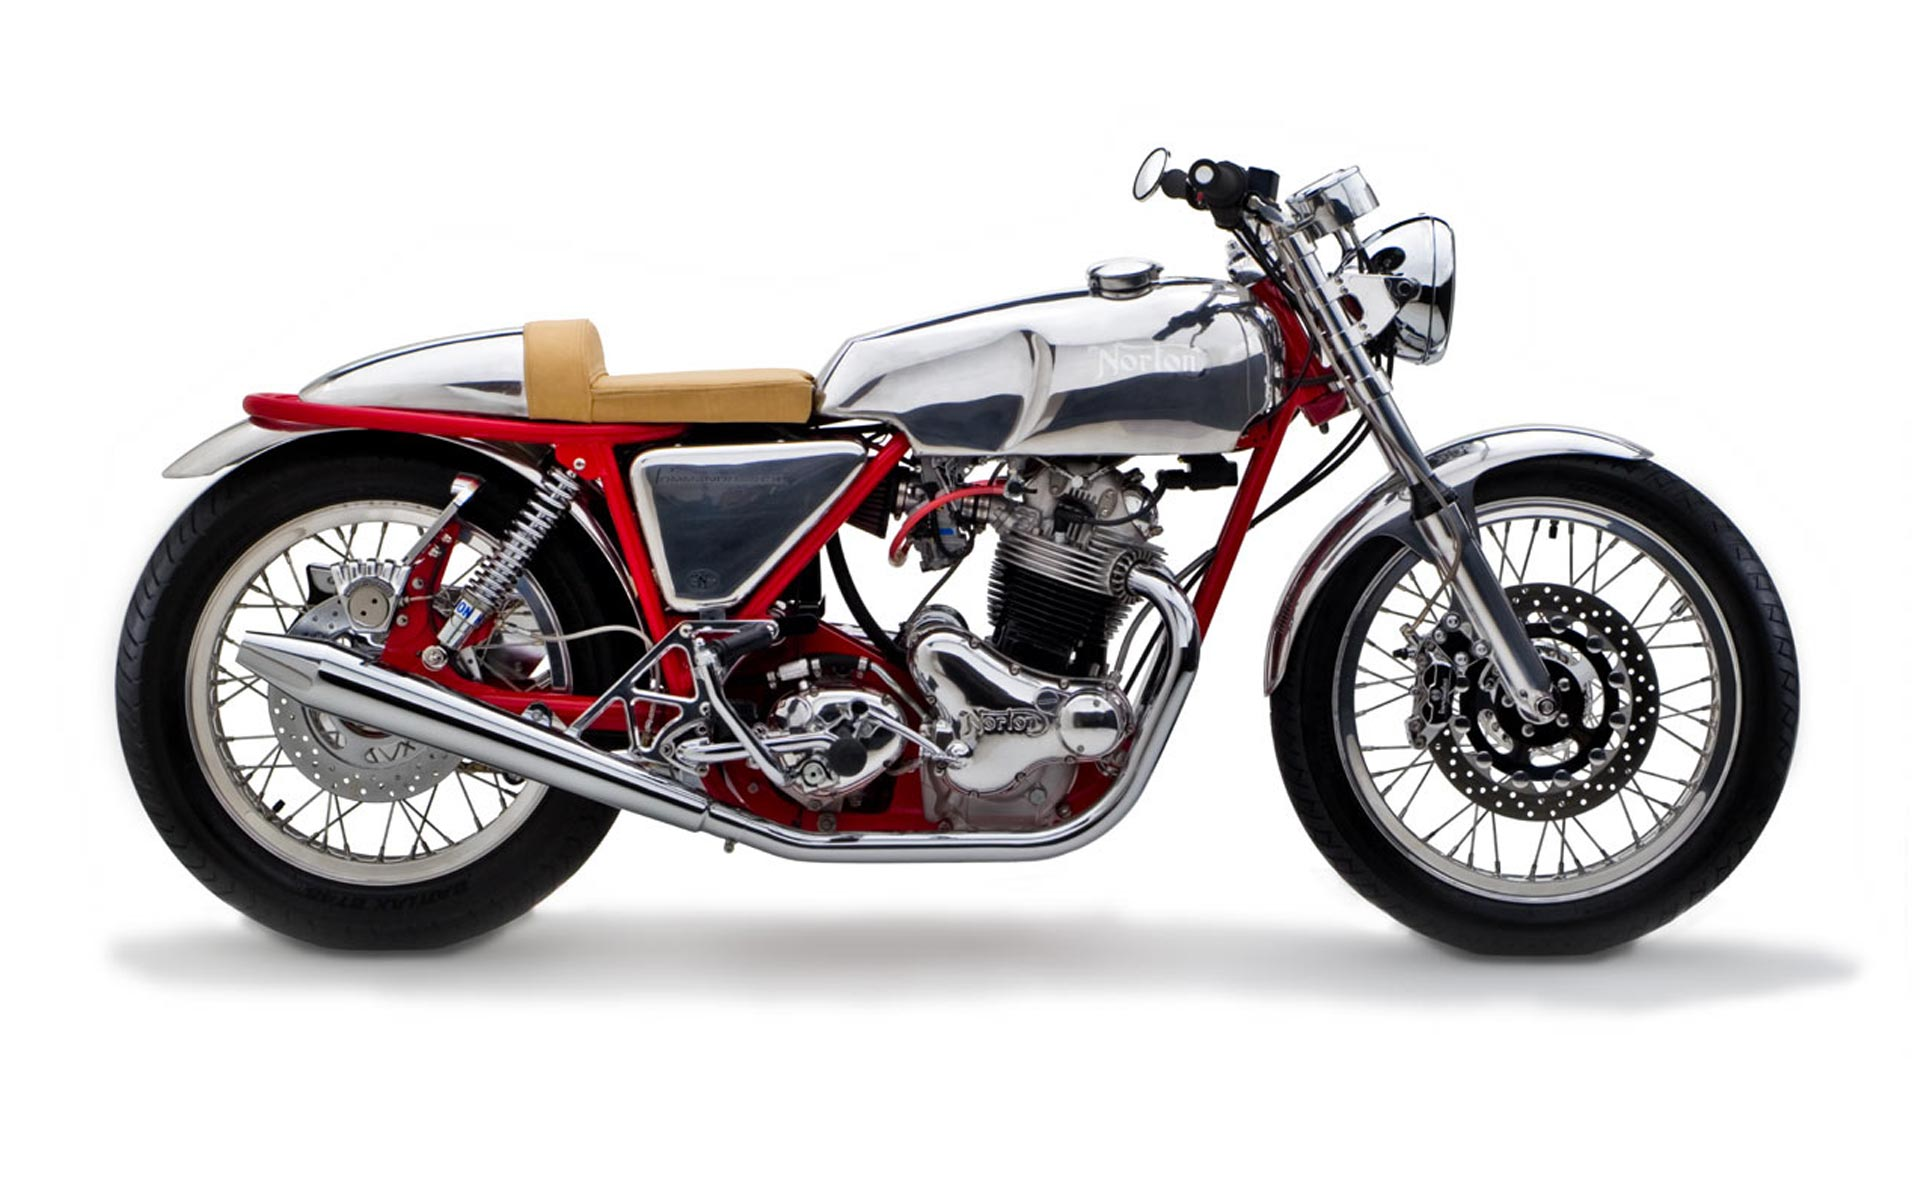 Motorcycle British motorcycle hd Wallpaper High Quality Wallpapers 1920x1200